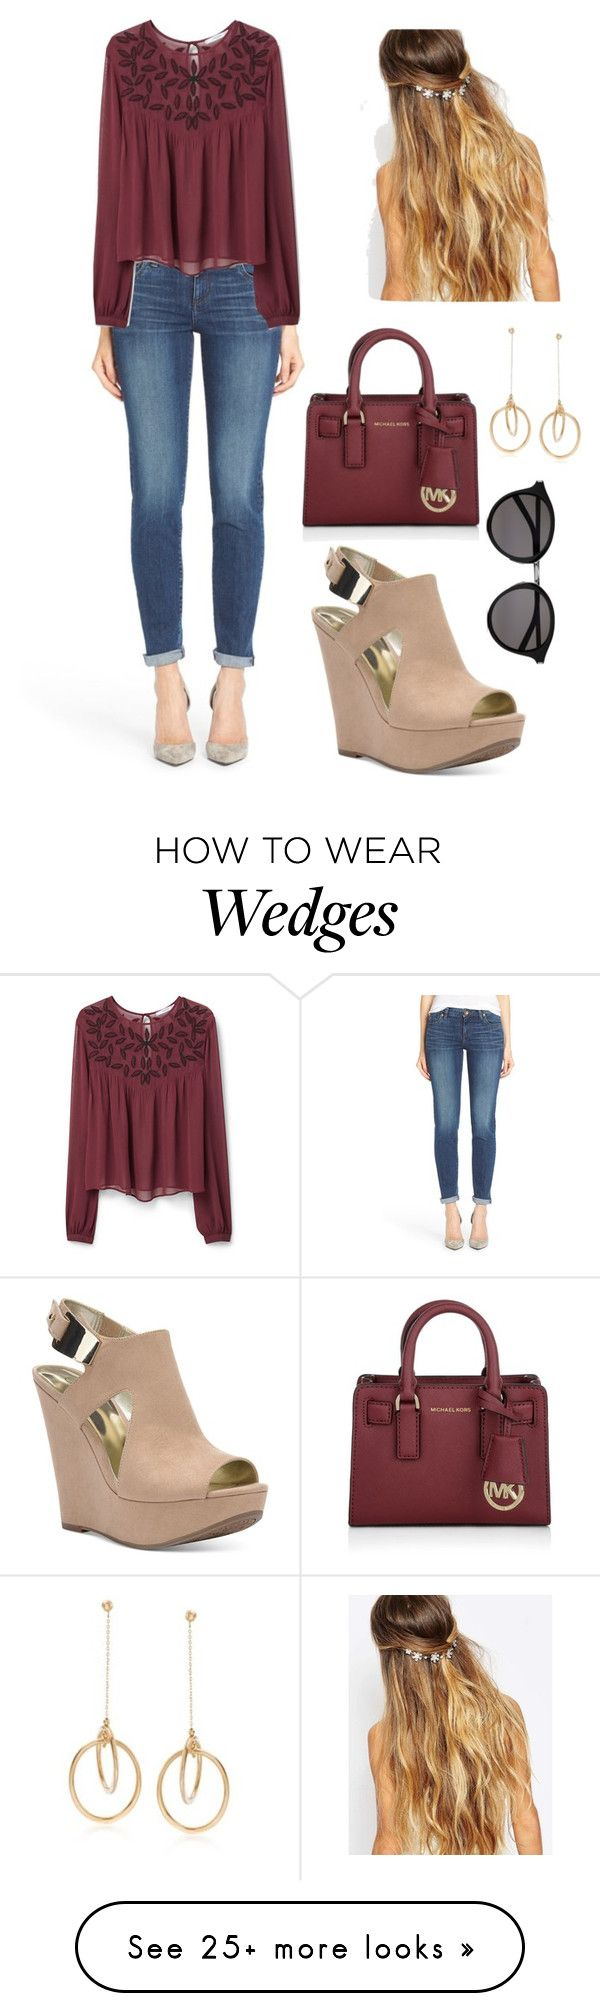 """""""Casual"""" by aowens99 on Polyvore featuring KUT from the Kloth, MANGO, Johnny Loves Rosie, Carlos by Carlos Santana, Yves Saint Laurent, Michael Kors, Ross-Simons, women's clothing, women and female"""